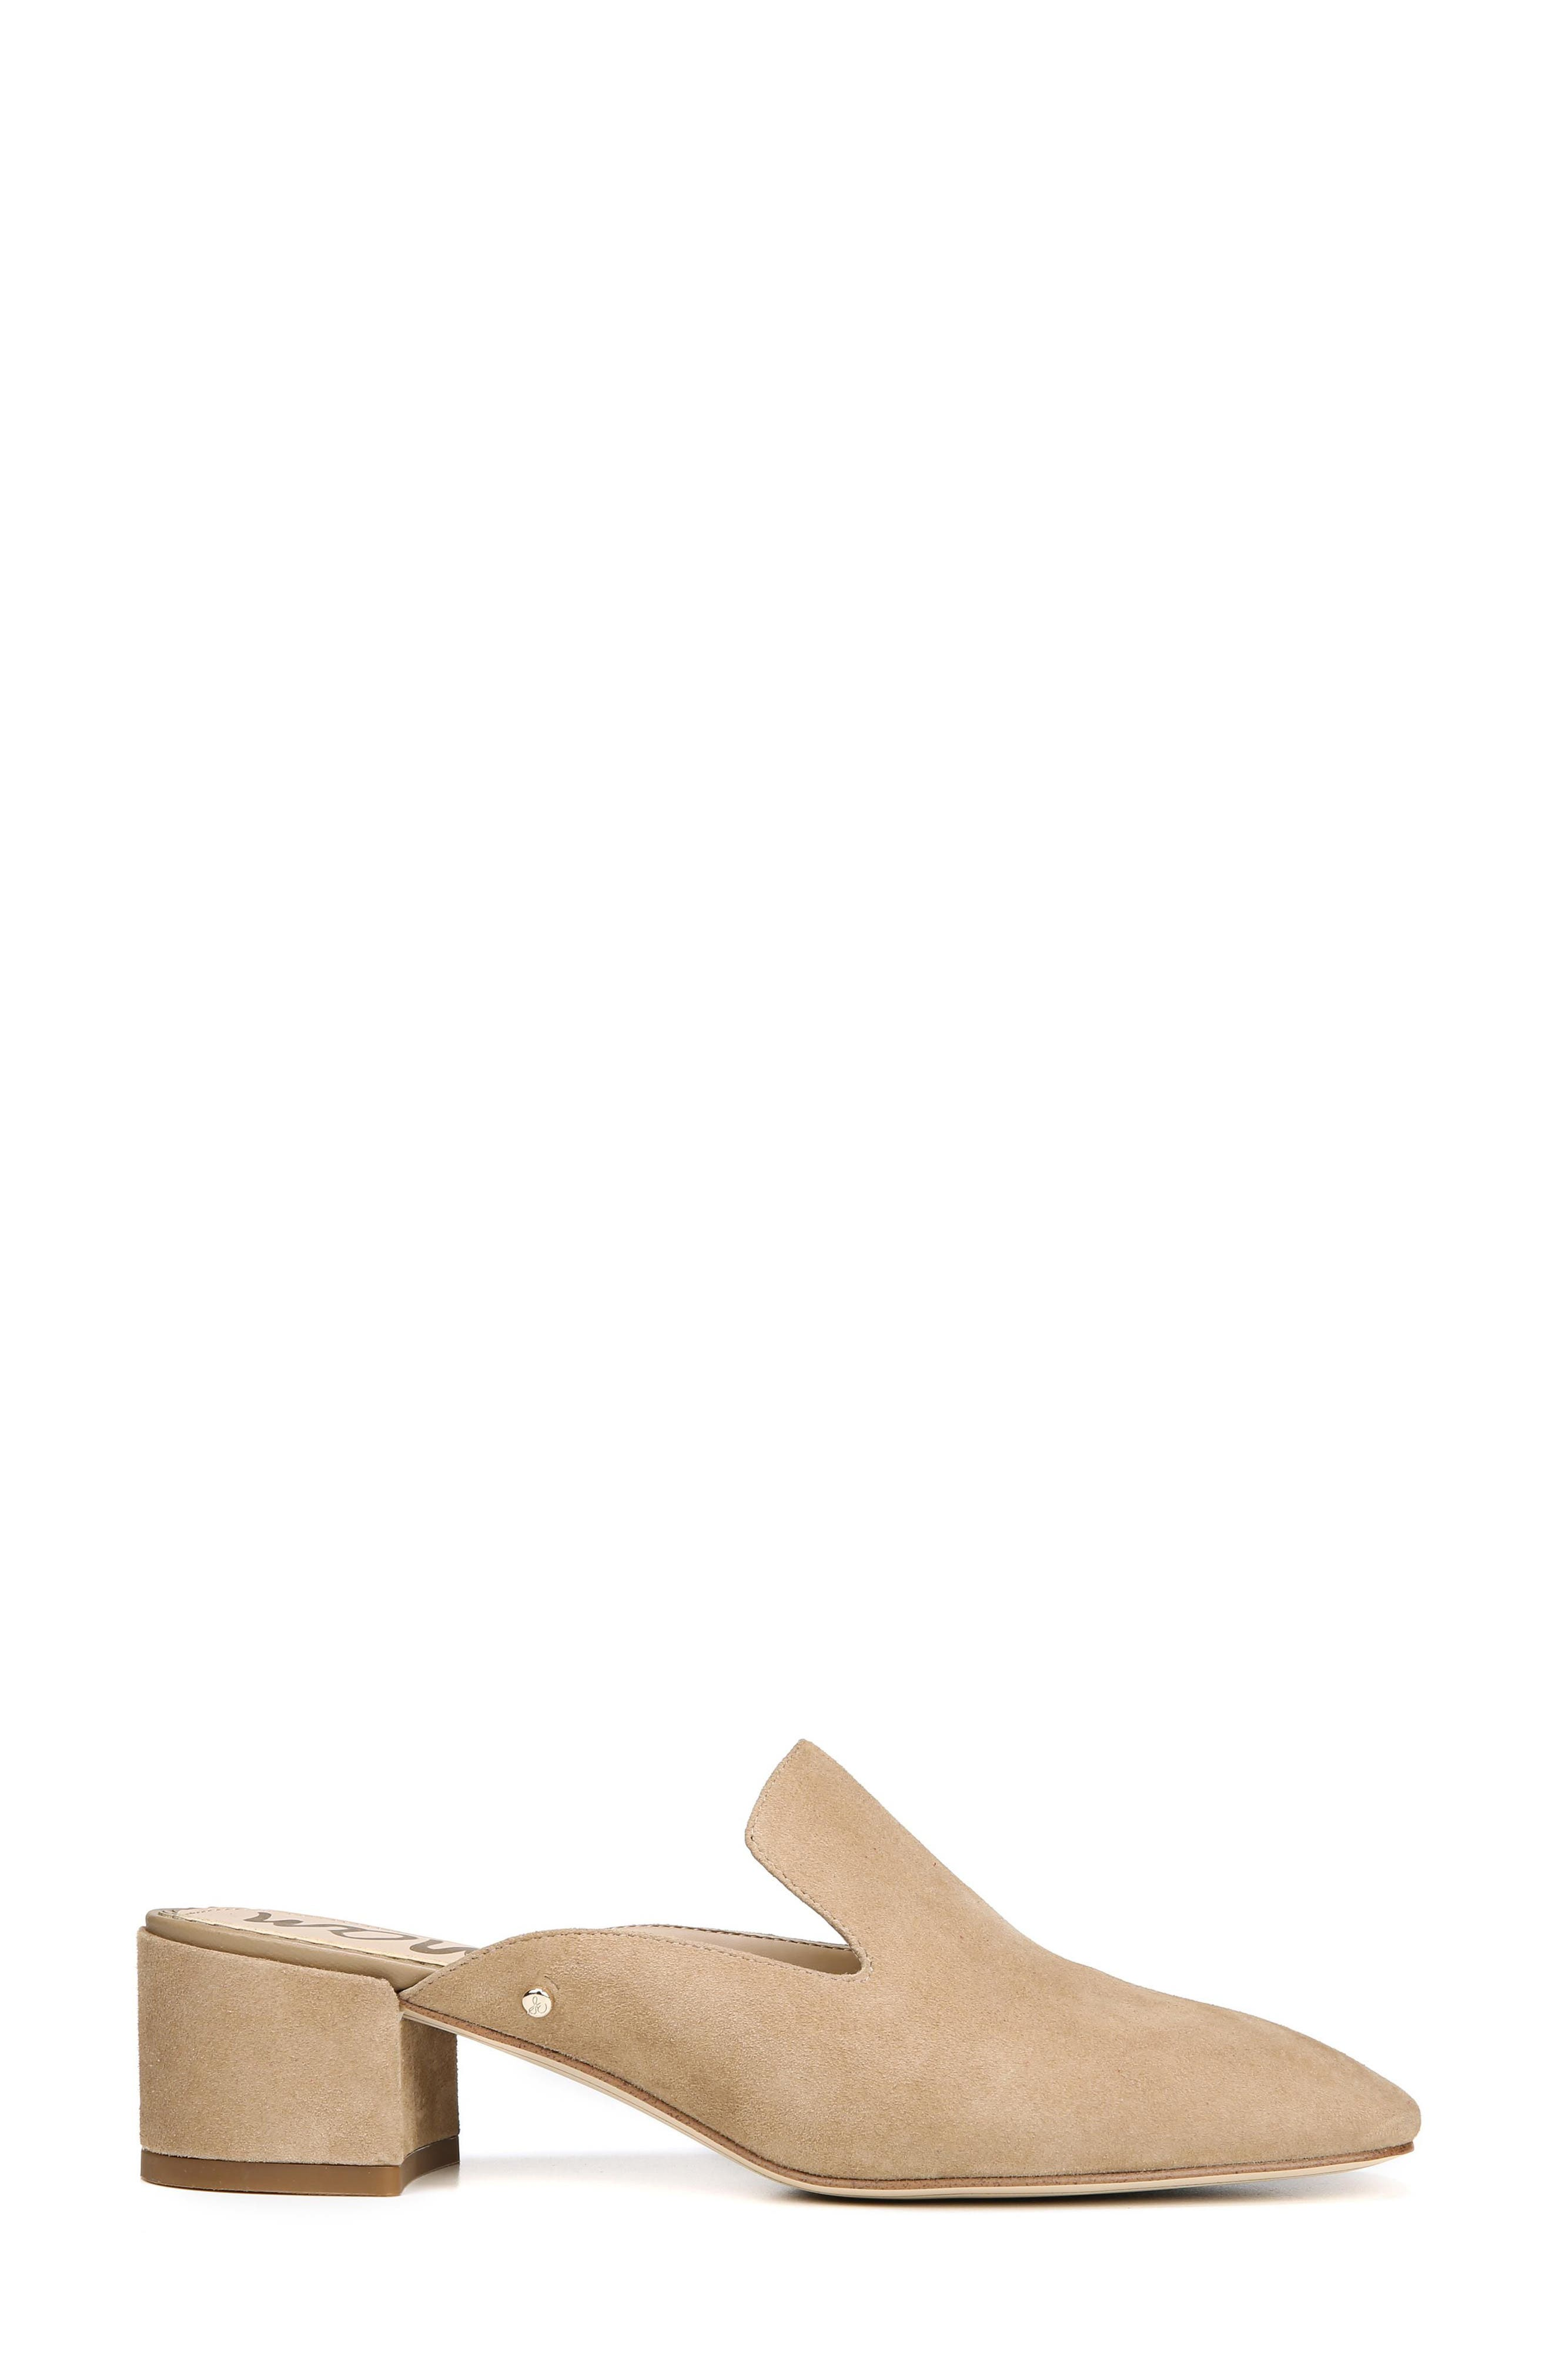 Adair Loafer Mule,                             Alternate thumbnail 3, color,                             OATMEAL LEATHER